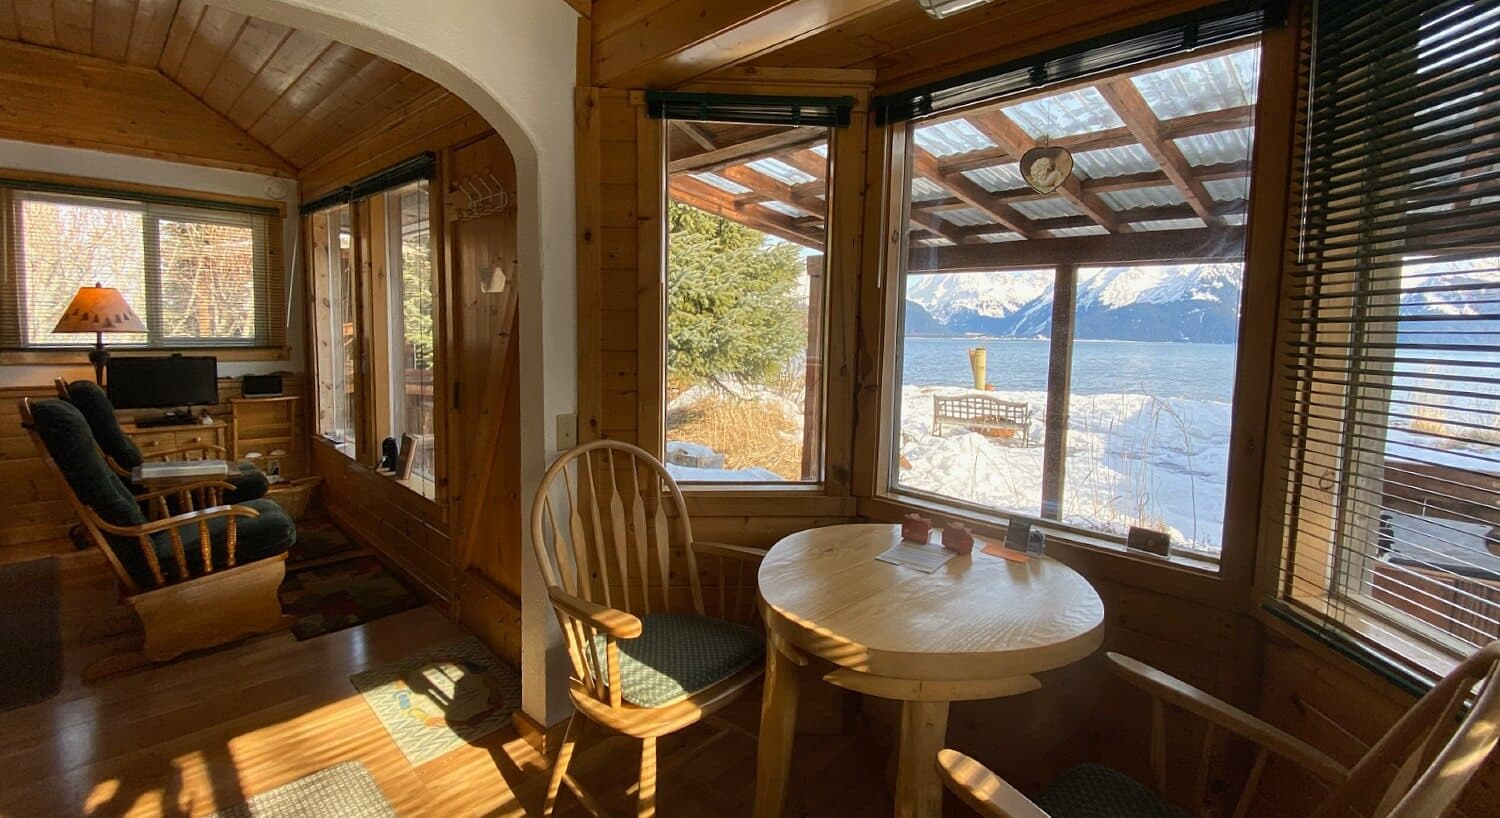 Corner of a cabin featuring sitting chairs and a table with two chairs under large windows looking out over water and mountains